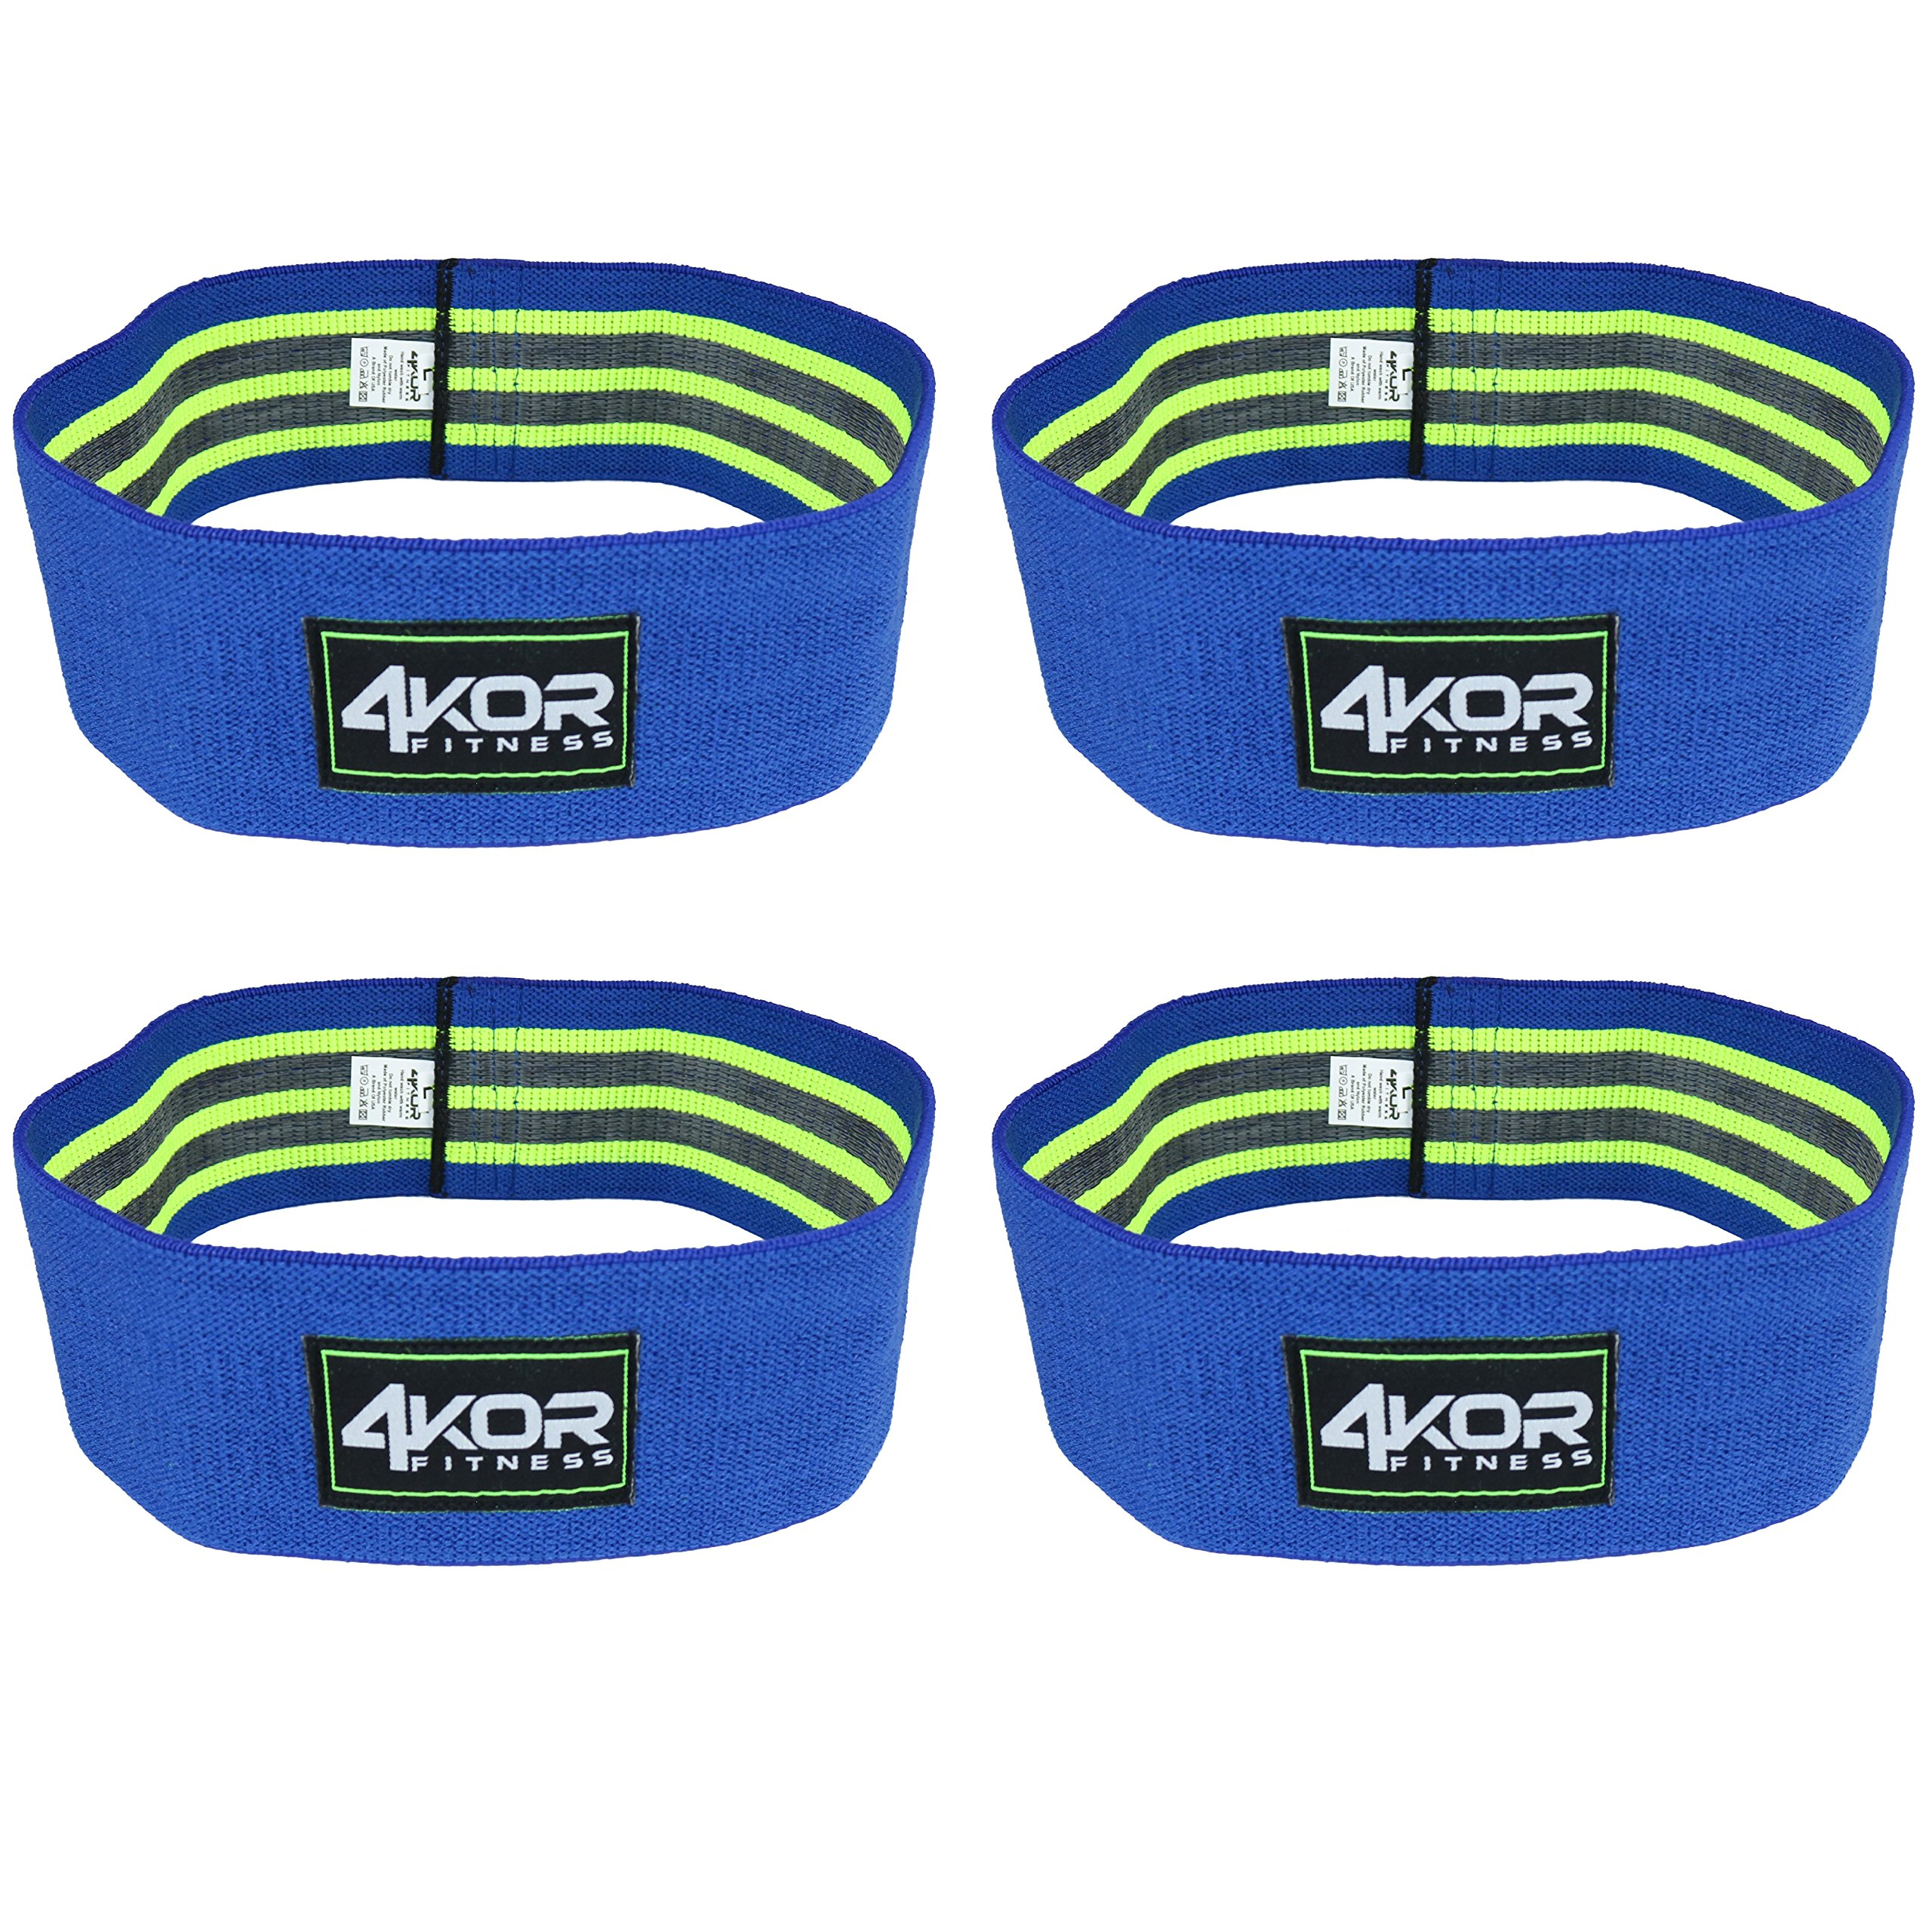 4KOR Fitness Resistance Loop Band Set, Perfect for Crossfit, Yoga, Physical Therapy, and Booty Building (4 Grippy Hip Band Set (Blue, All Large))